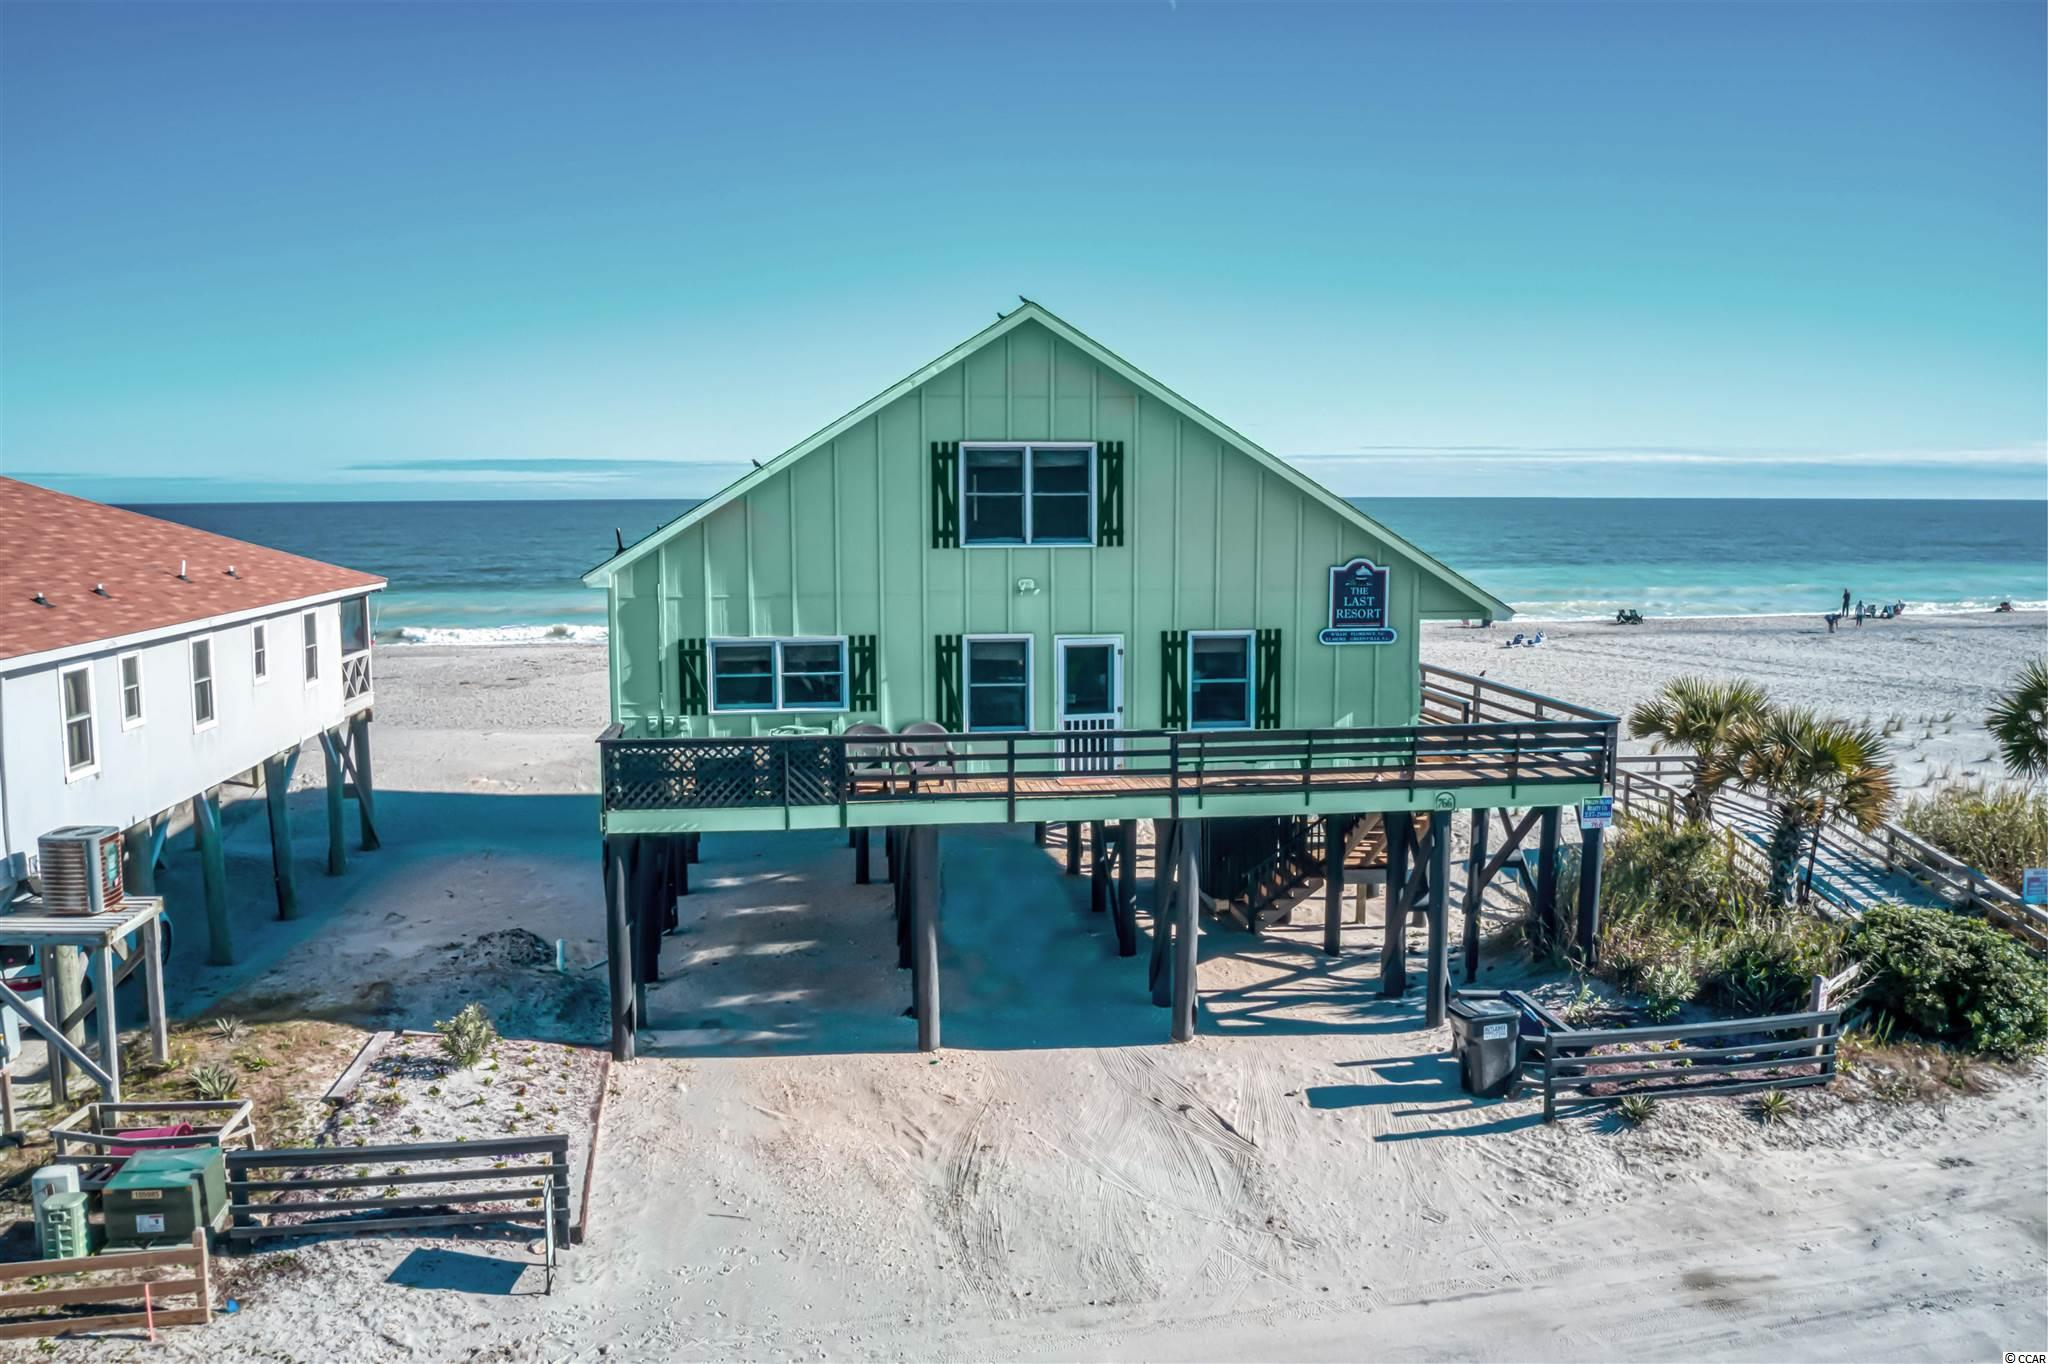 """Dont' miss your opportunity to purchase this wonderful 6BR 3 Bath home on the beautiful South End of the Island. It's one of the few Remaining Oceanfront and Creekfront homes available. Spectacular Sunrise and Sunset views from this Location! Affectionately known as """"The Last Resort"""" you will have full access to everything that Stunning Pawleys Island has to offer! You'll make treasured memories for a lifetime fishing and crabbing at the one of the best fishing docks on the Island! Launch a Skiff, Paddleboard, Kayak from your Creekside Dock w/ Floater that was redone in 2015. Throw a cast net for bait or catch fresh local blue crabs for dinner. Relax in the afternoon floating down the creek on a tube. On the Ocean side take a sunrise walk with the dog, enjoy an evening run on the beach, or simply soak up the sun! The possibilities are endless! The wrap around porch and balconies will become your favorite place to start and end your day. The exterior was recently painted and there's plenty of Parking for everyone. The outside shower is a nice feature that be used by owners and guests alike. Two of the A/C units were replaced in 2018 and one in 2017.  As you move into the home is has lots of open space and is made for families gatherings. The Living Room, Kitchen, and Dining areas have an indoor Tiki Hut style decor, and family dining around the table for ten is where the stories of the day will be shared. The Home will sleep 12 comfortably and has repeat vacationers year after year. The Bedrooms are spacious & 3 Full Baths will take care of your crowd. There are Spectacular Views from every room! This Raised Beach Home has Excellent Rental Income so ask your Agent to share it with you. If you are looking for a Beach Home that reflects all the Charm and Character of what Pawleys Island is every time you step foot on the property, this one is for you! Call for your appointment to see it and start making your own Beach memories today!"""